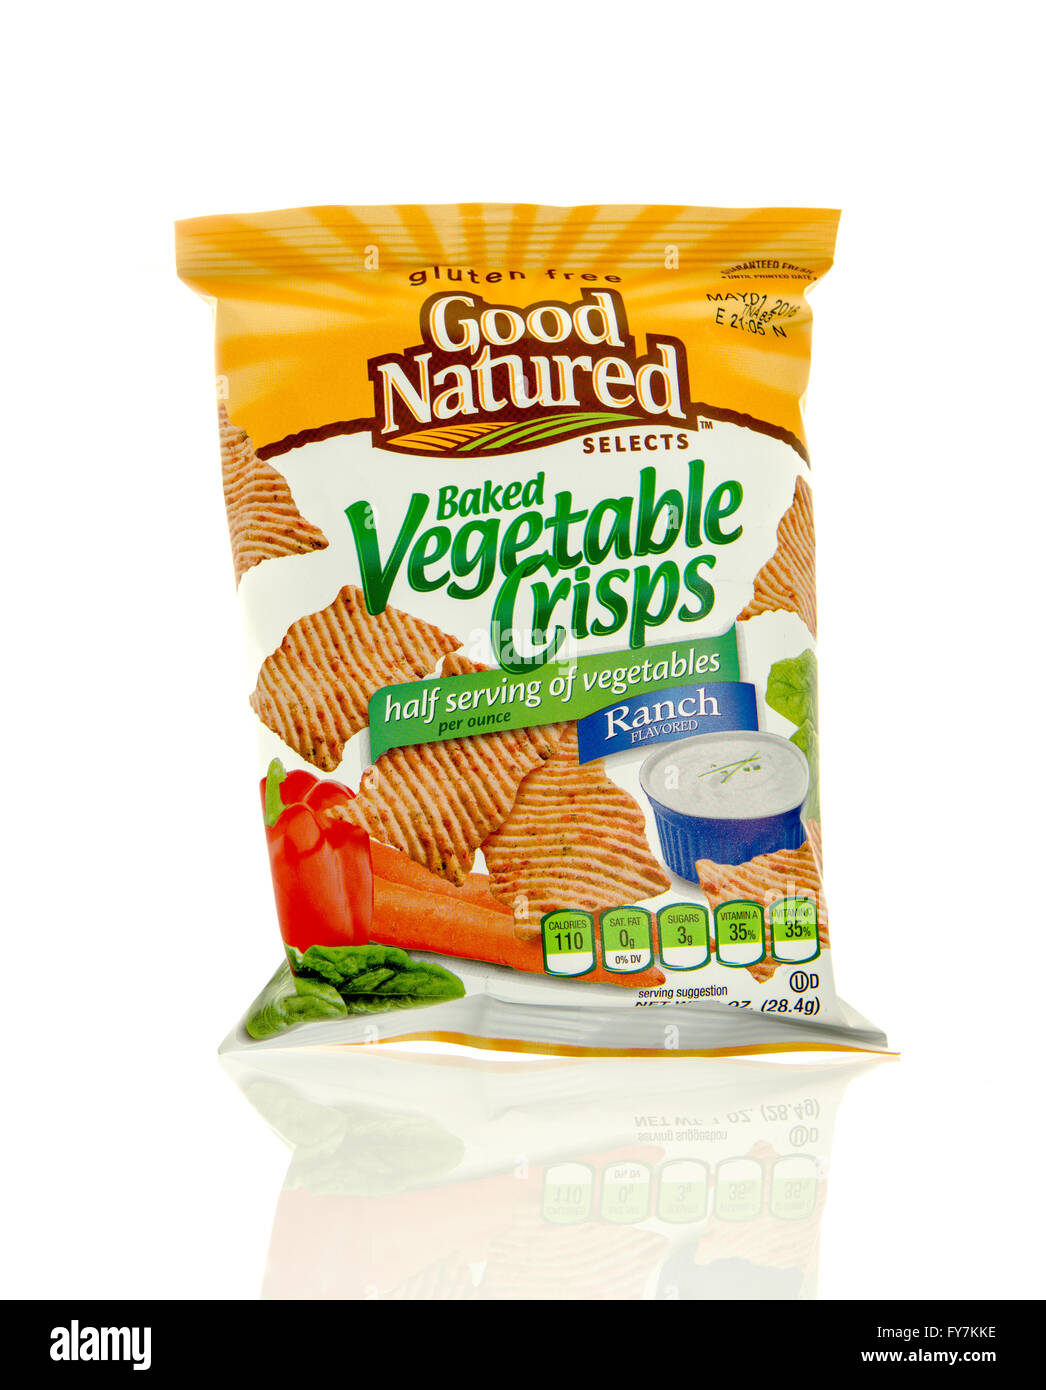 Winneconne, WI - 17 Feb 2016: Bag of Good Natured Selects baked vegetable chips in ranch flavor. - Stock Image